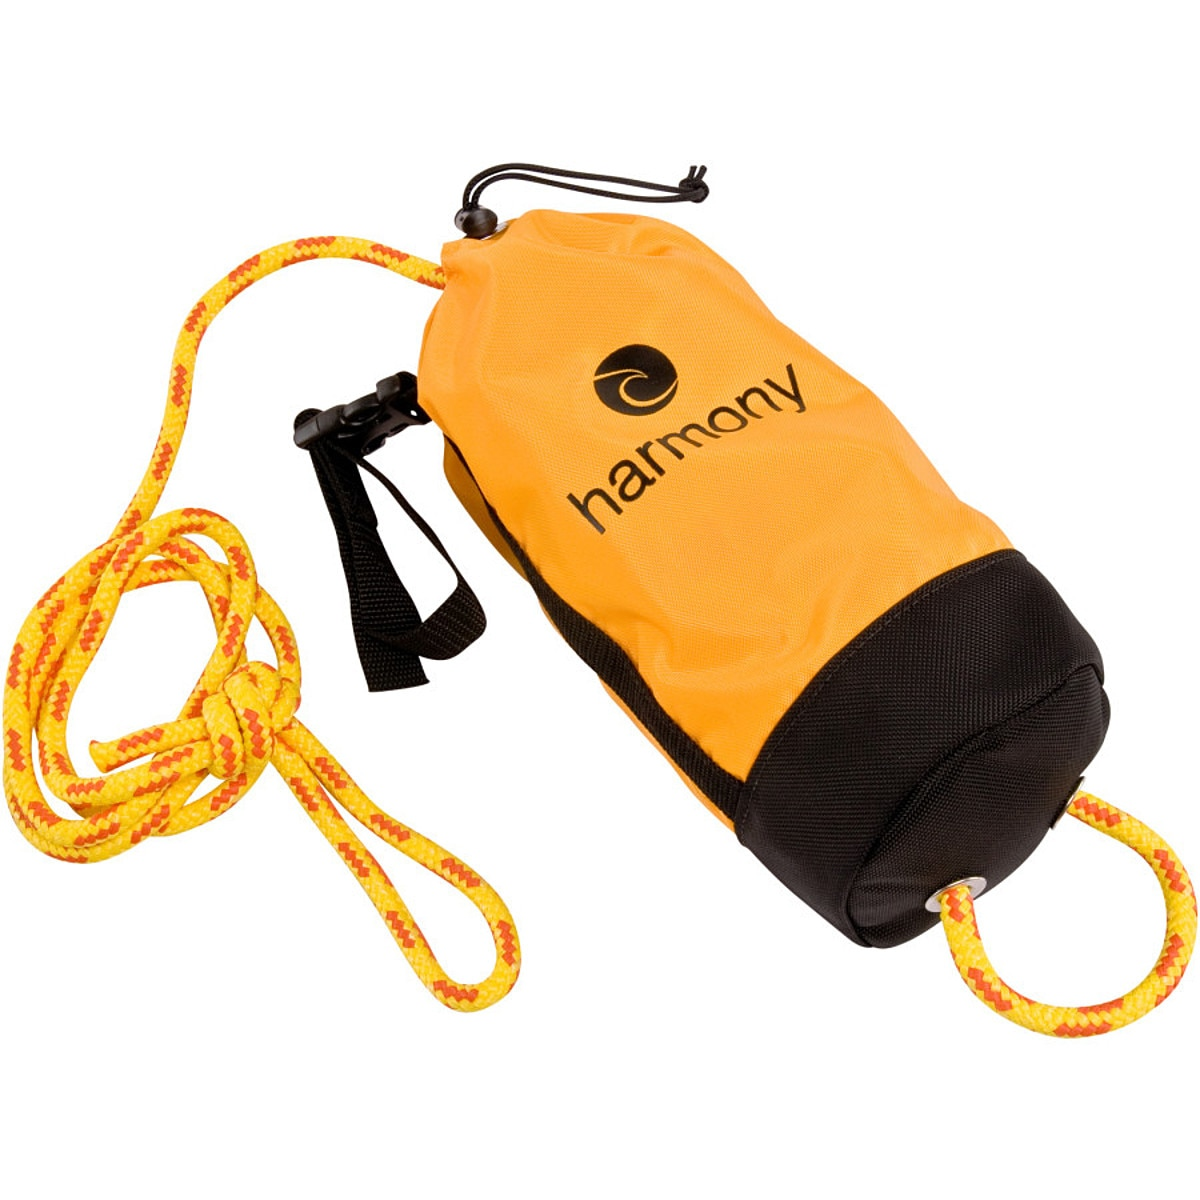 Harmony 70 Foot Rescue Throw Bag Yellow One Size